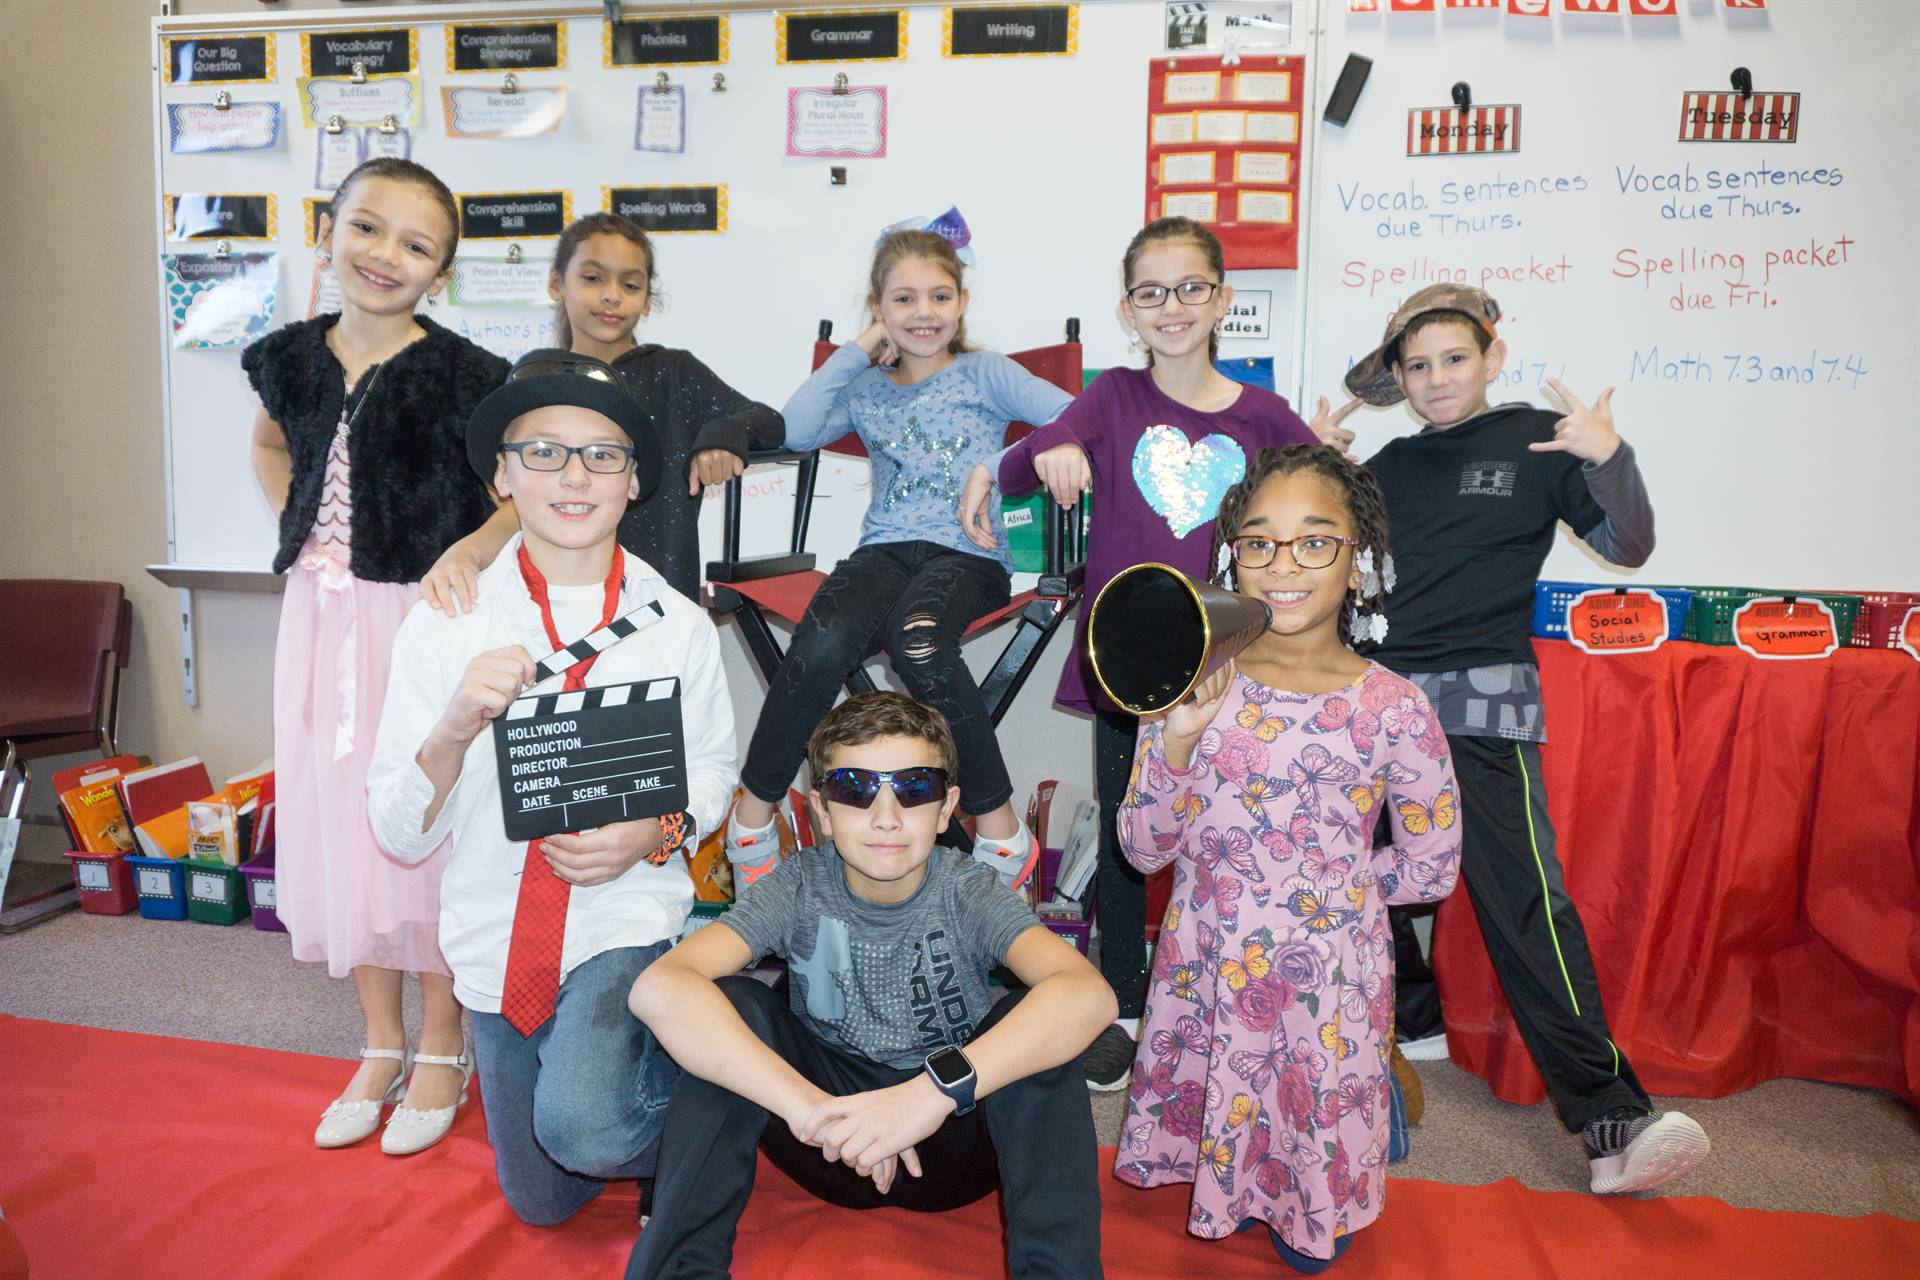 Franklin Students on Hollywood Dress Up Day